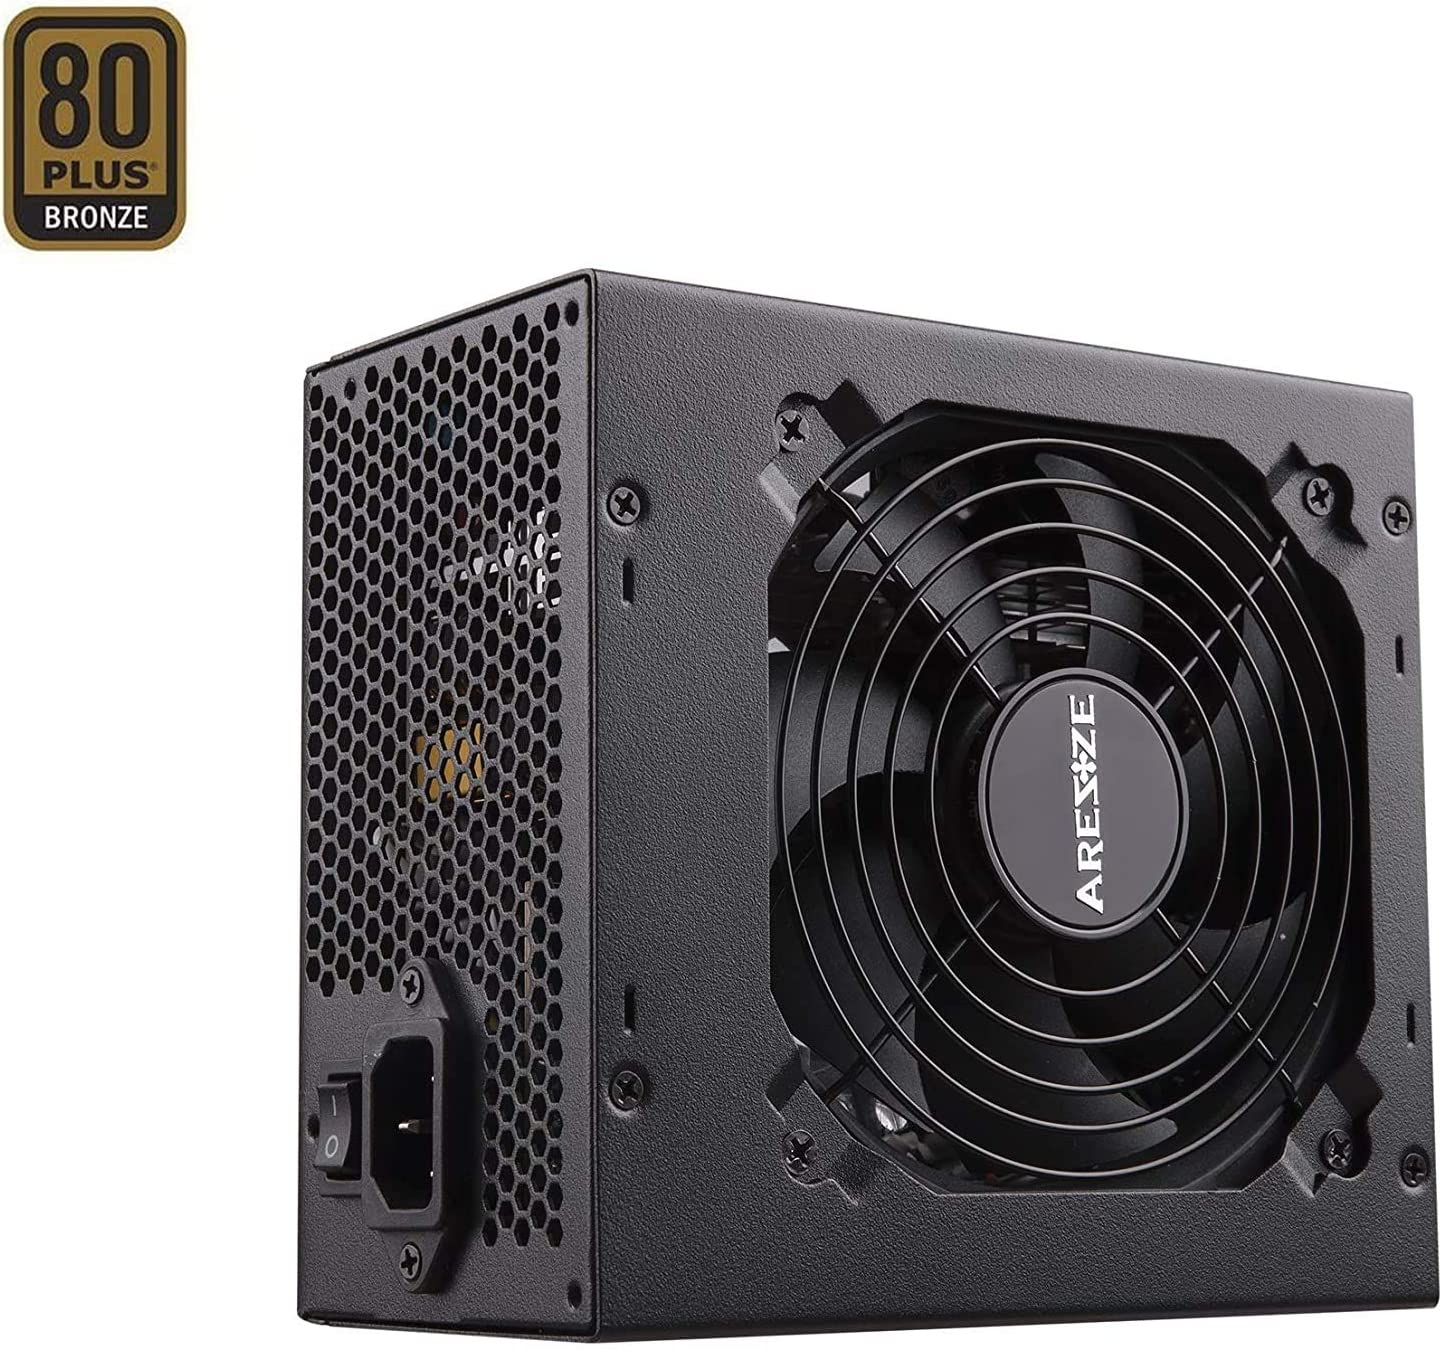 GOLDEN FIELD ARESZE 450W Semi Modular 80 Plus Bronze Power Supply ATX PC PSU with Low Noise Fan for Desktop Computer PC 450W